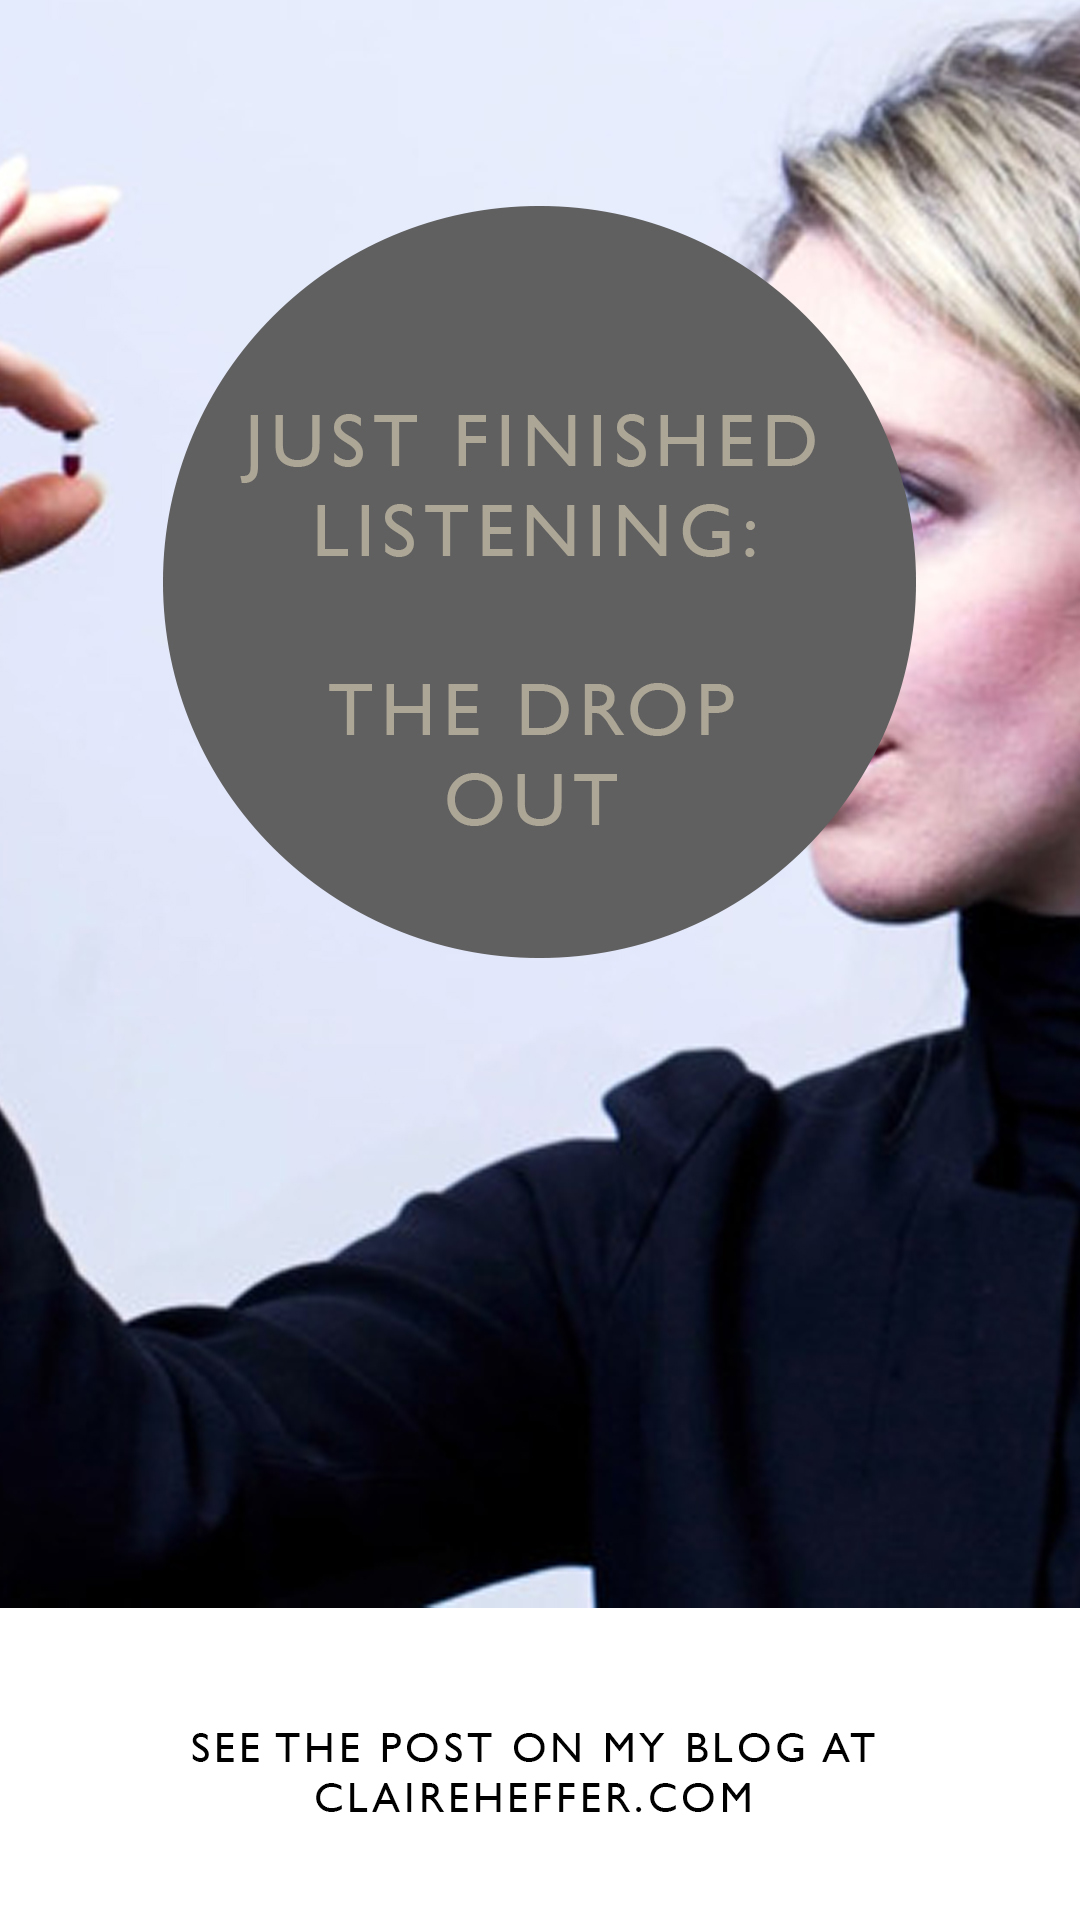 JUST FINISHED LISTENING: THE DROP OUT